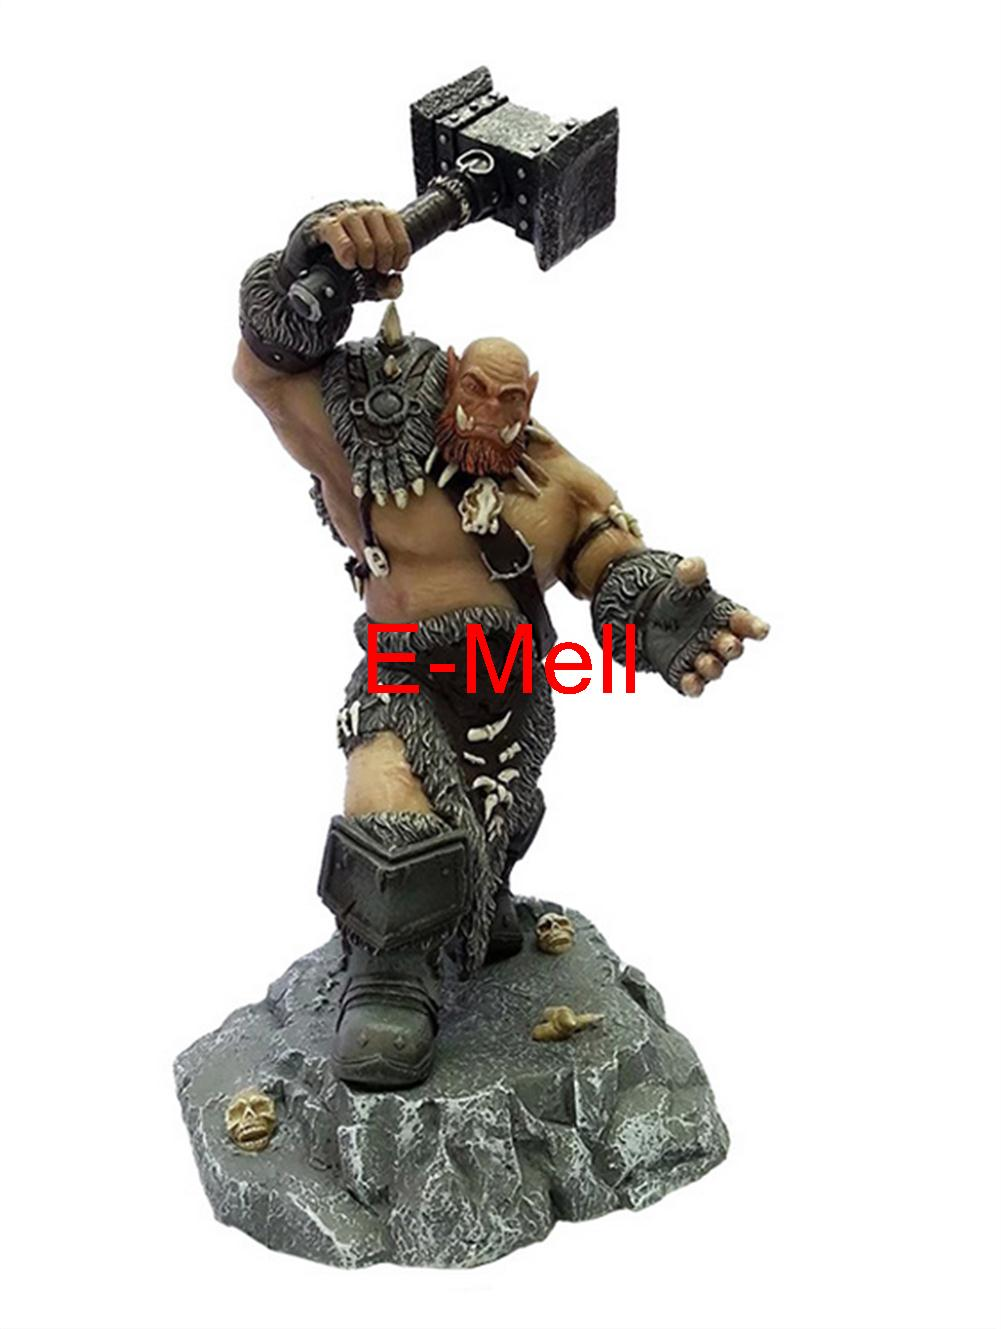 Cosplay Ogrim 30cm/11.8'' Boxed GK Garage Kits Action Figures Toys Model cosplay durotan 22cm 8 7 boxed gk garage kits action figures toys model